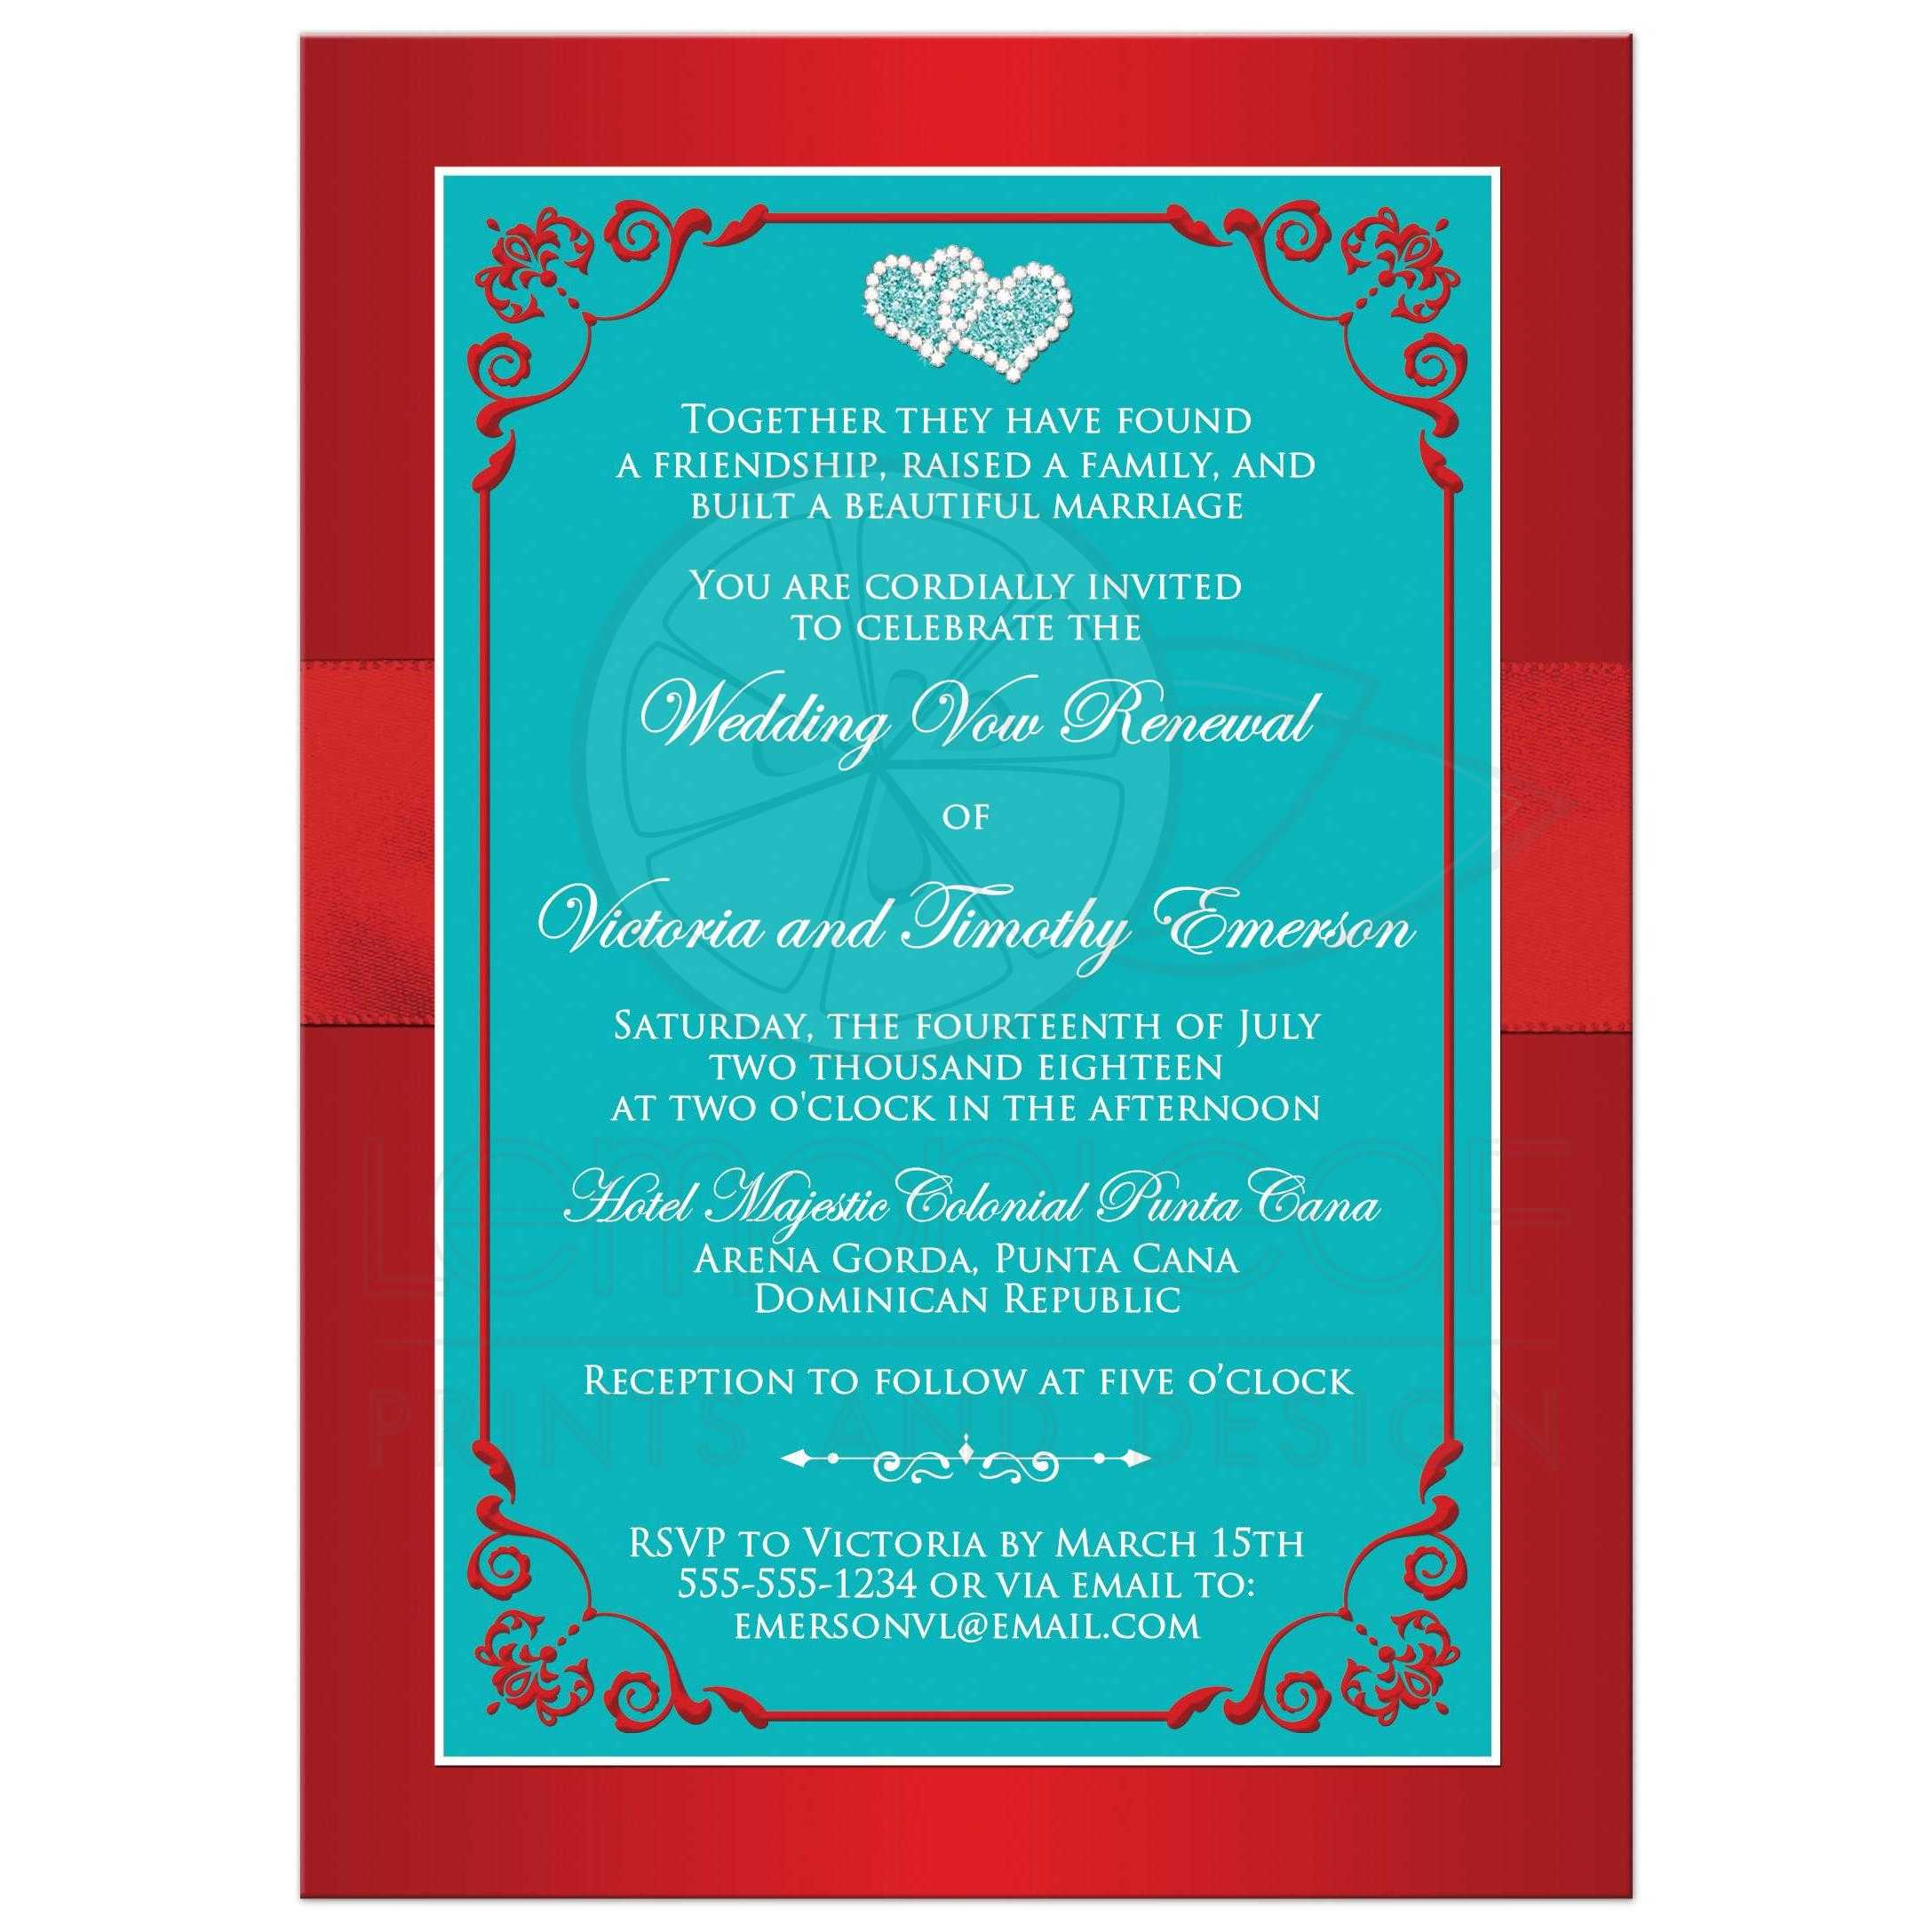 Wedding Vow Renewal Invitation | PRINTED Ribbon/Bow, Joined Jeweled ...